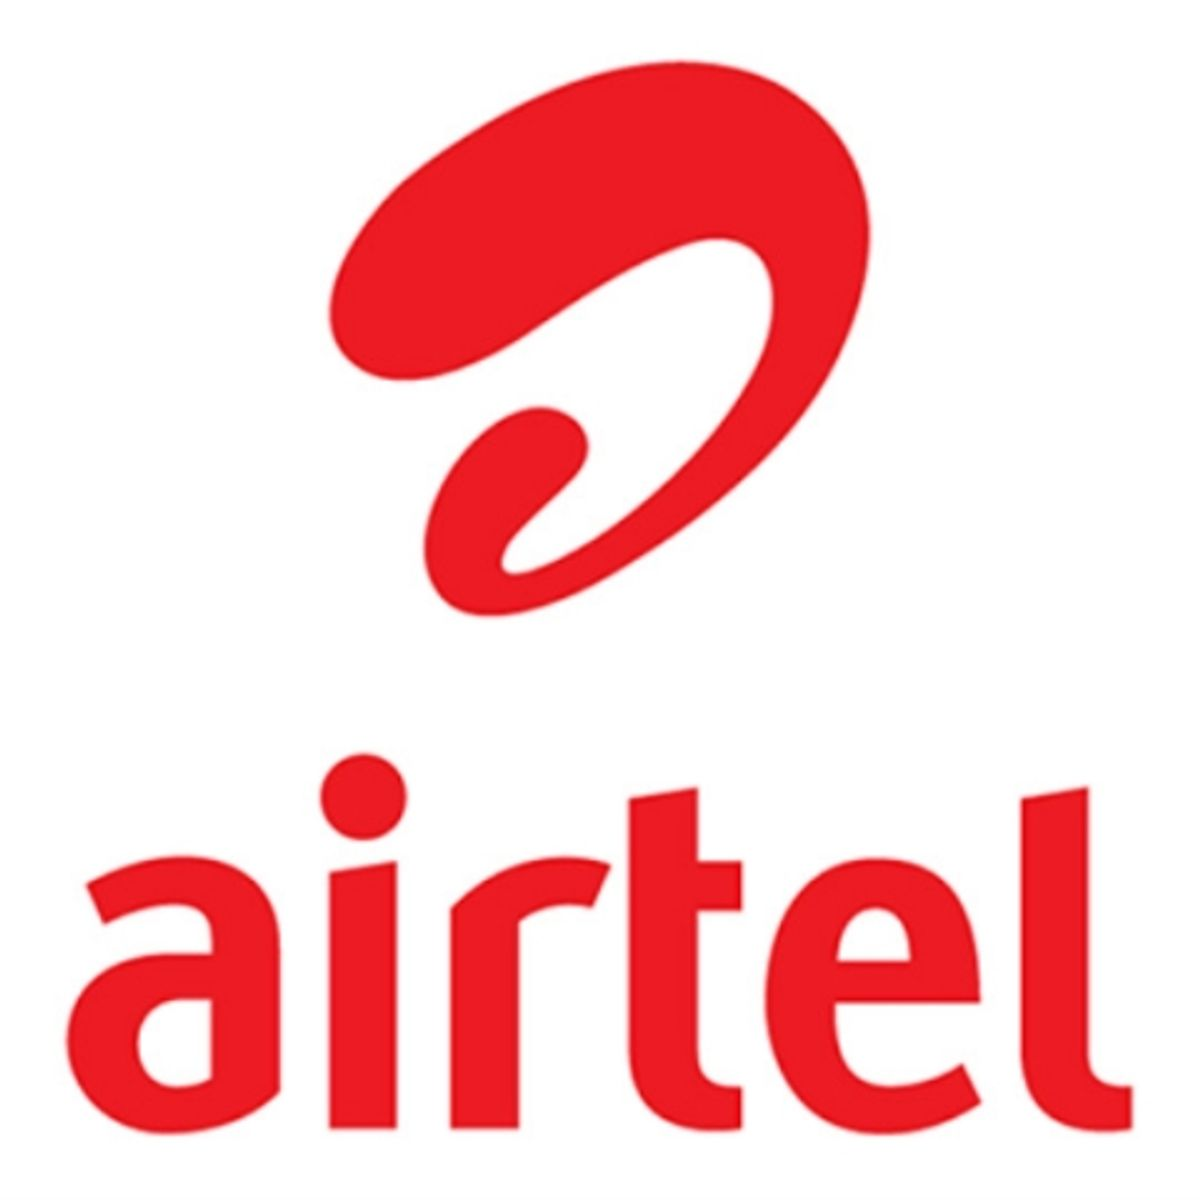 Airtel rolls out a new version of the Airtel TV app for iOS